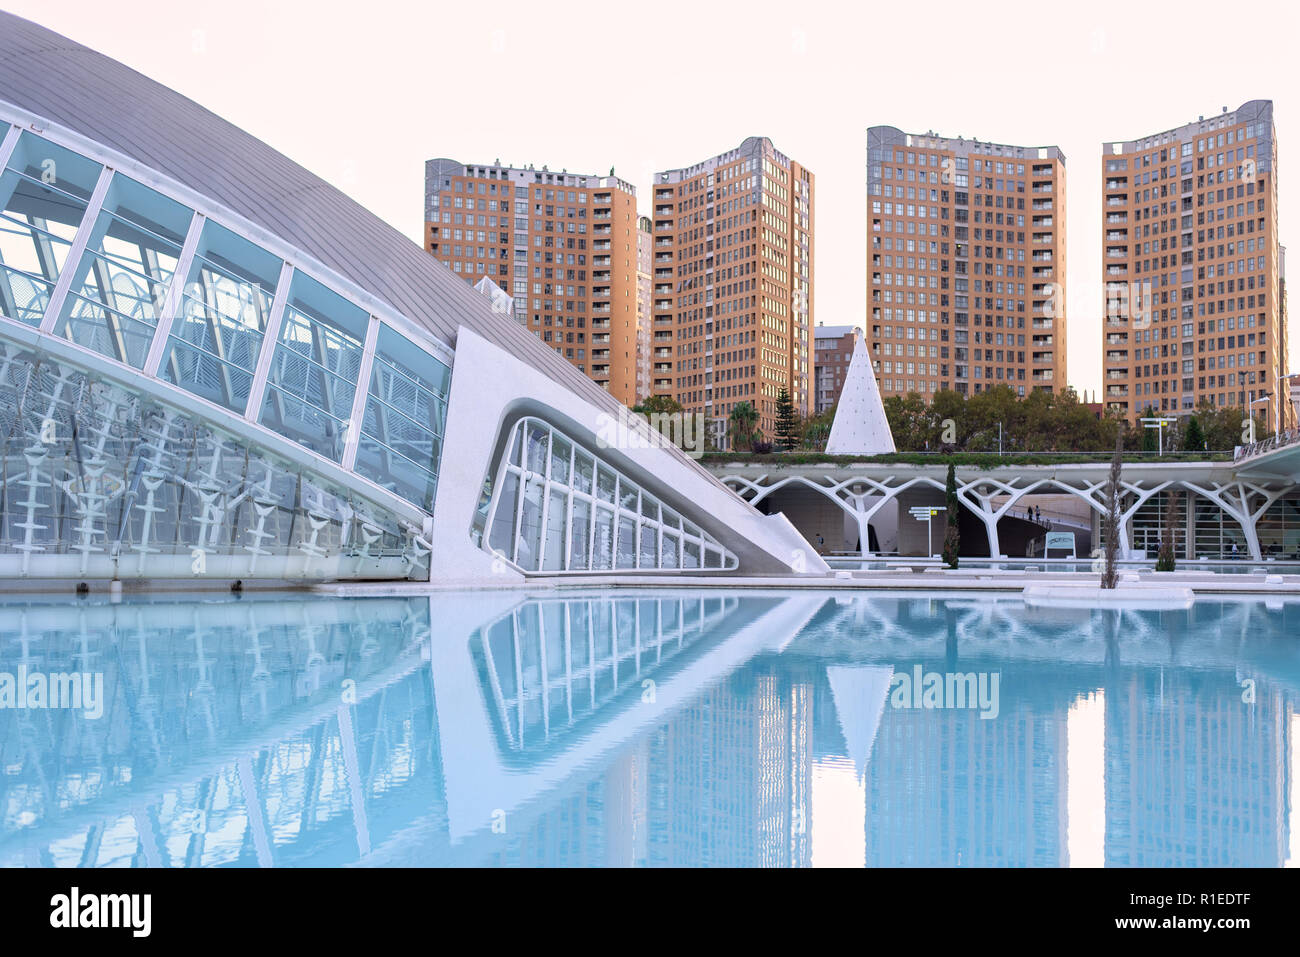 City of Arts and Sciences in Valencia, Spain Stock Photo